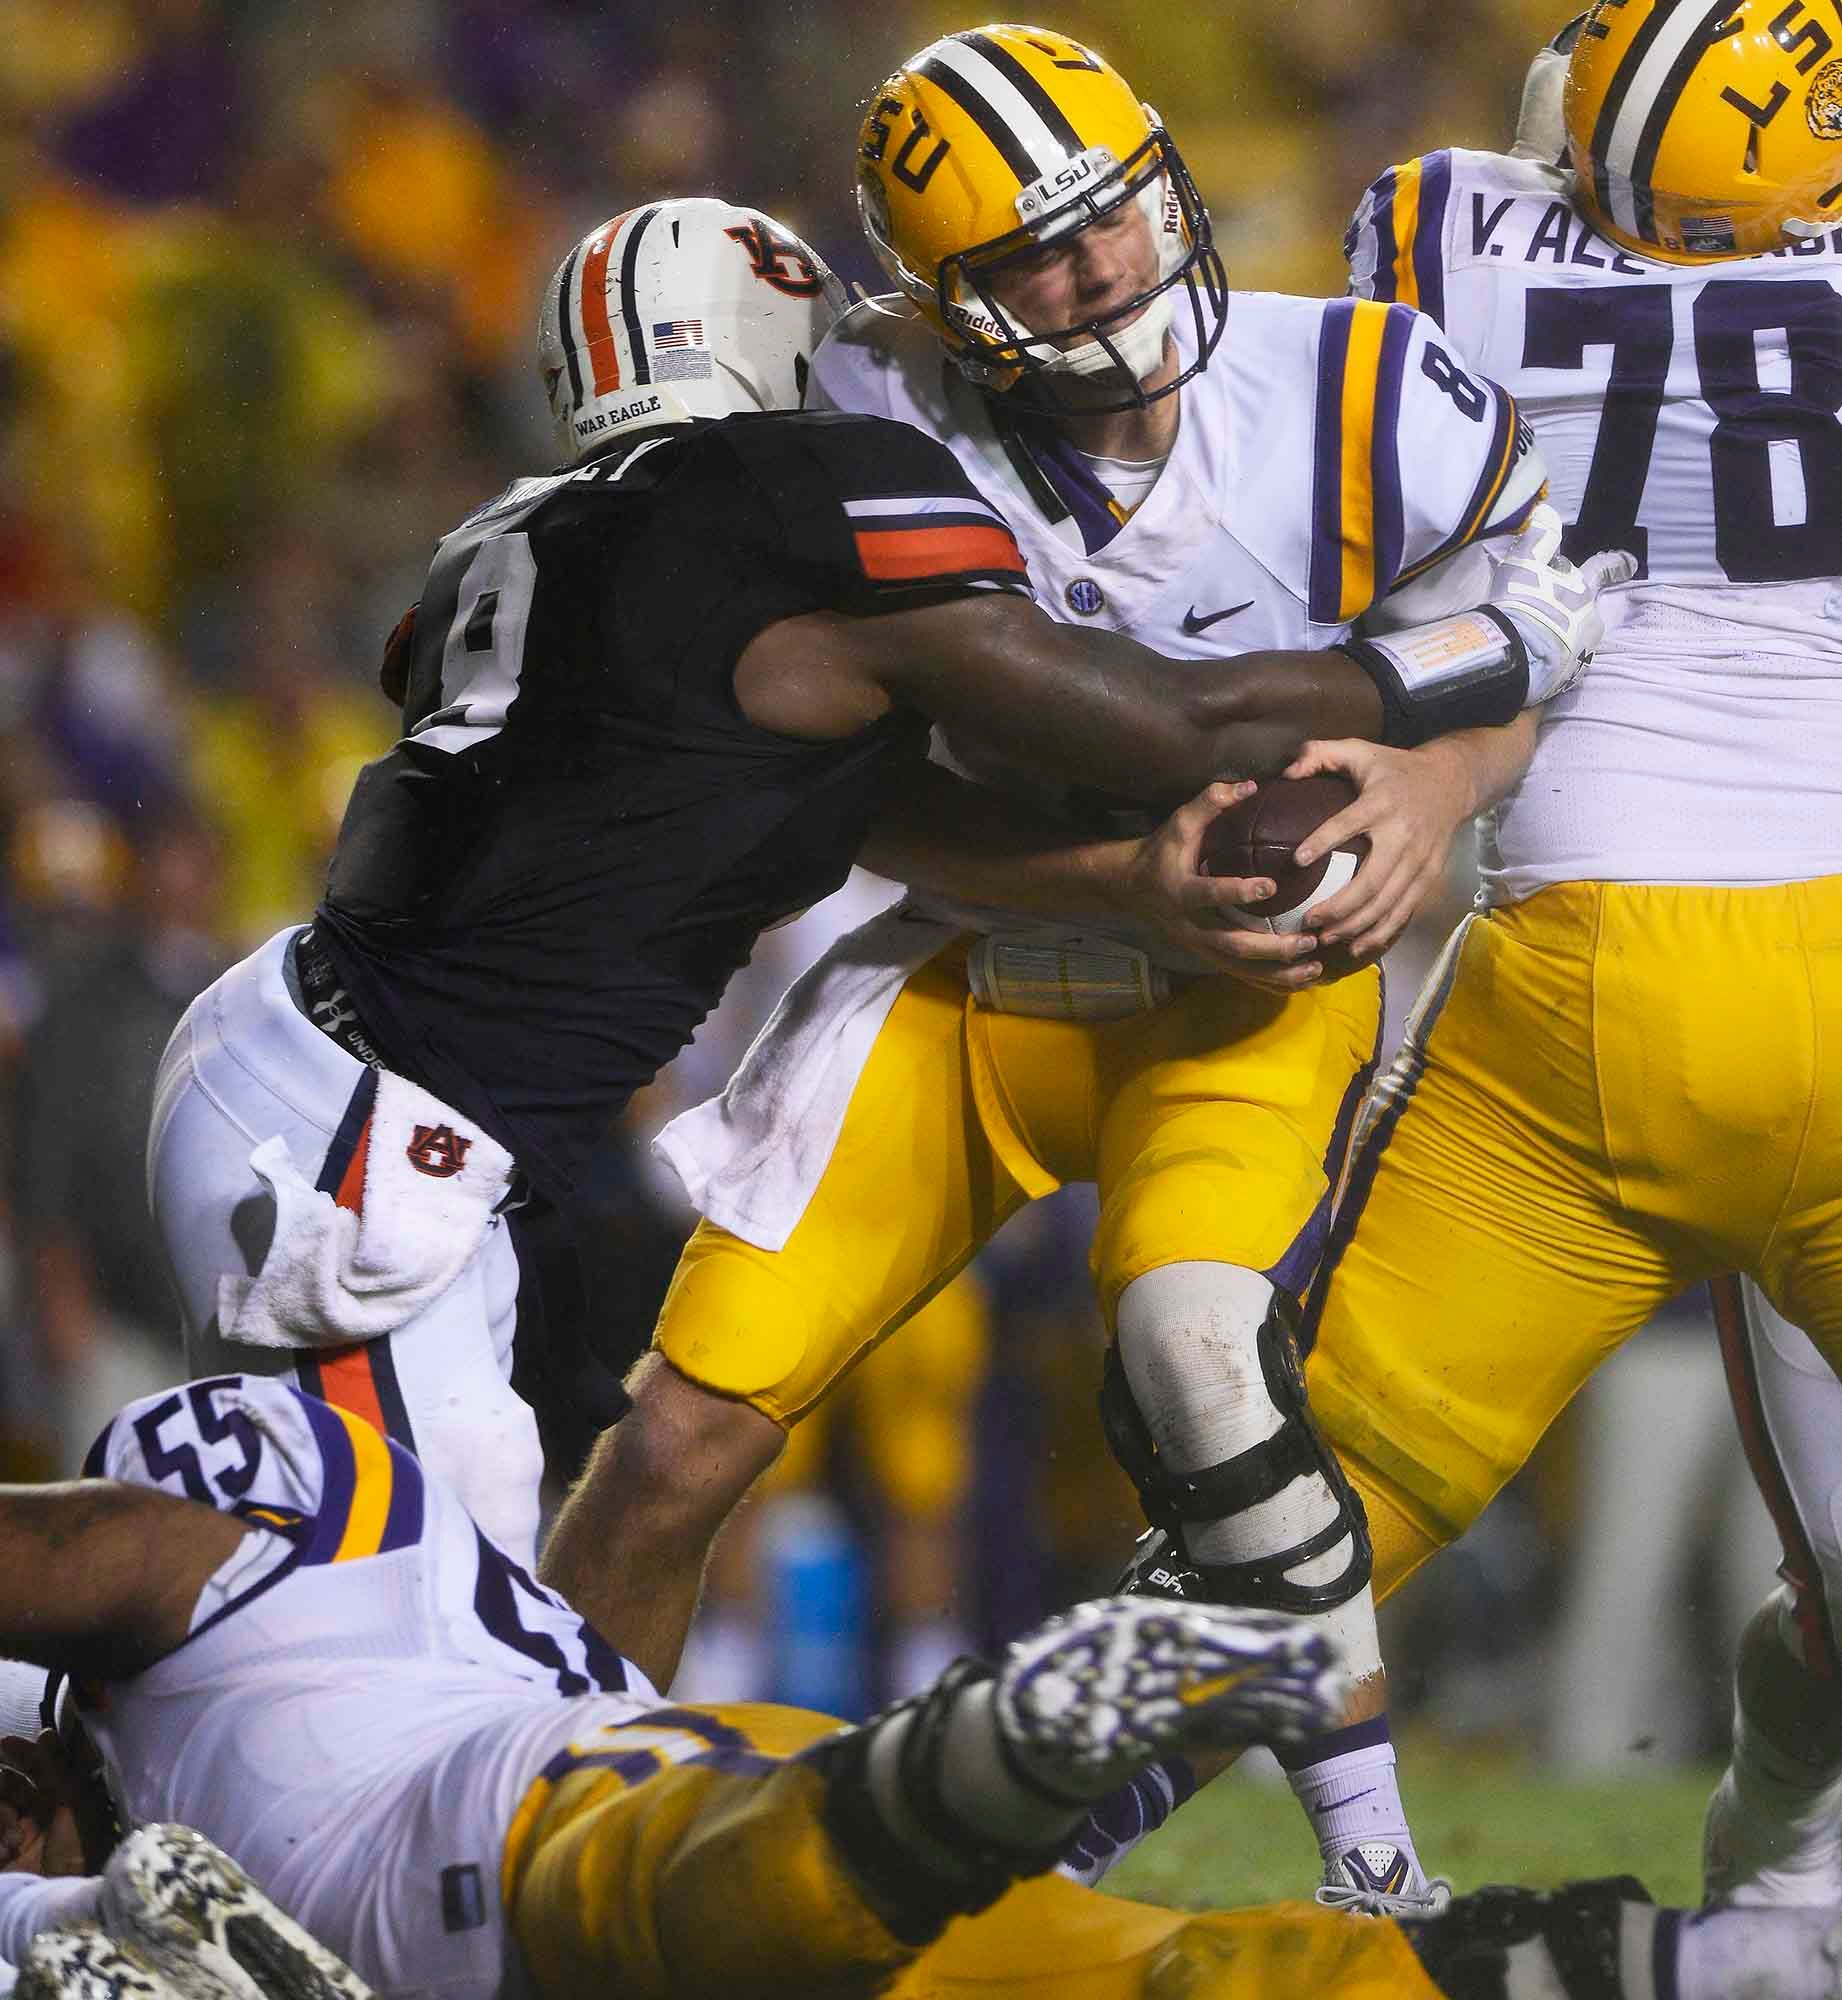 Auburn made some good plays against LSU, including this sack of quarterback Zach Mettenberger that contributed to his -7 rushing yards. (Source: Todd van Emst/Auburn